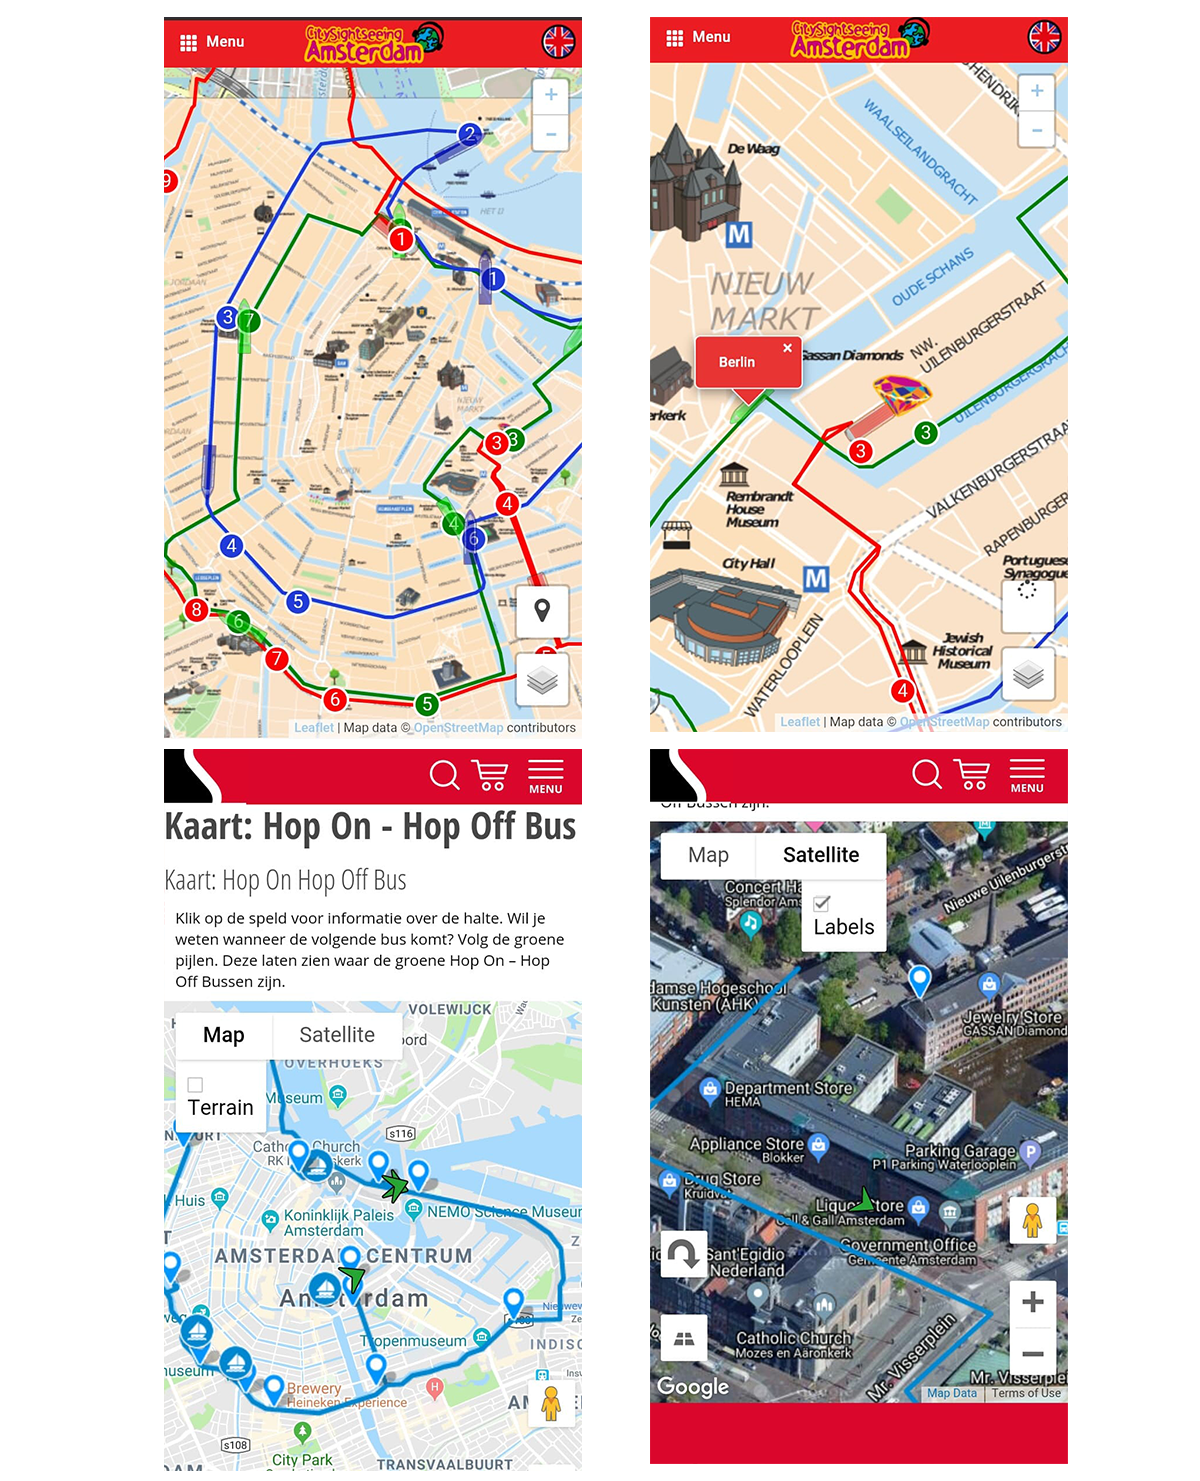 Sightseeing apps with live tracking of vehicles